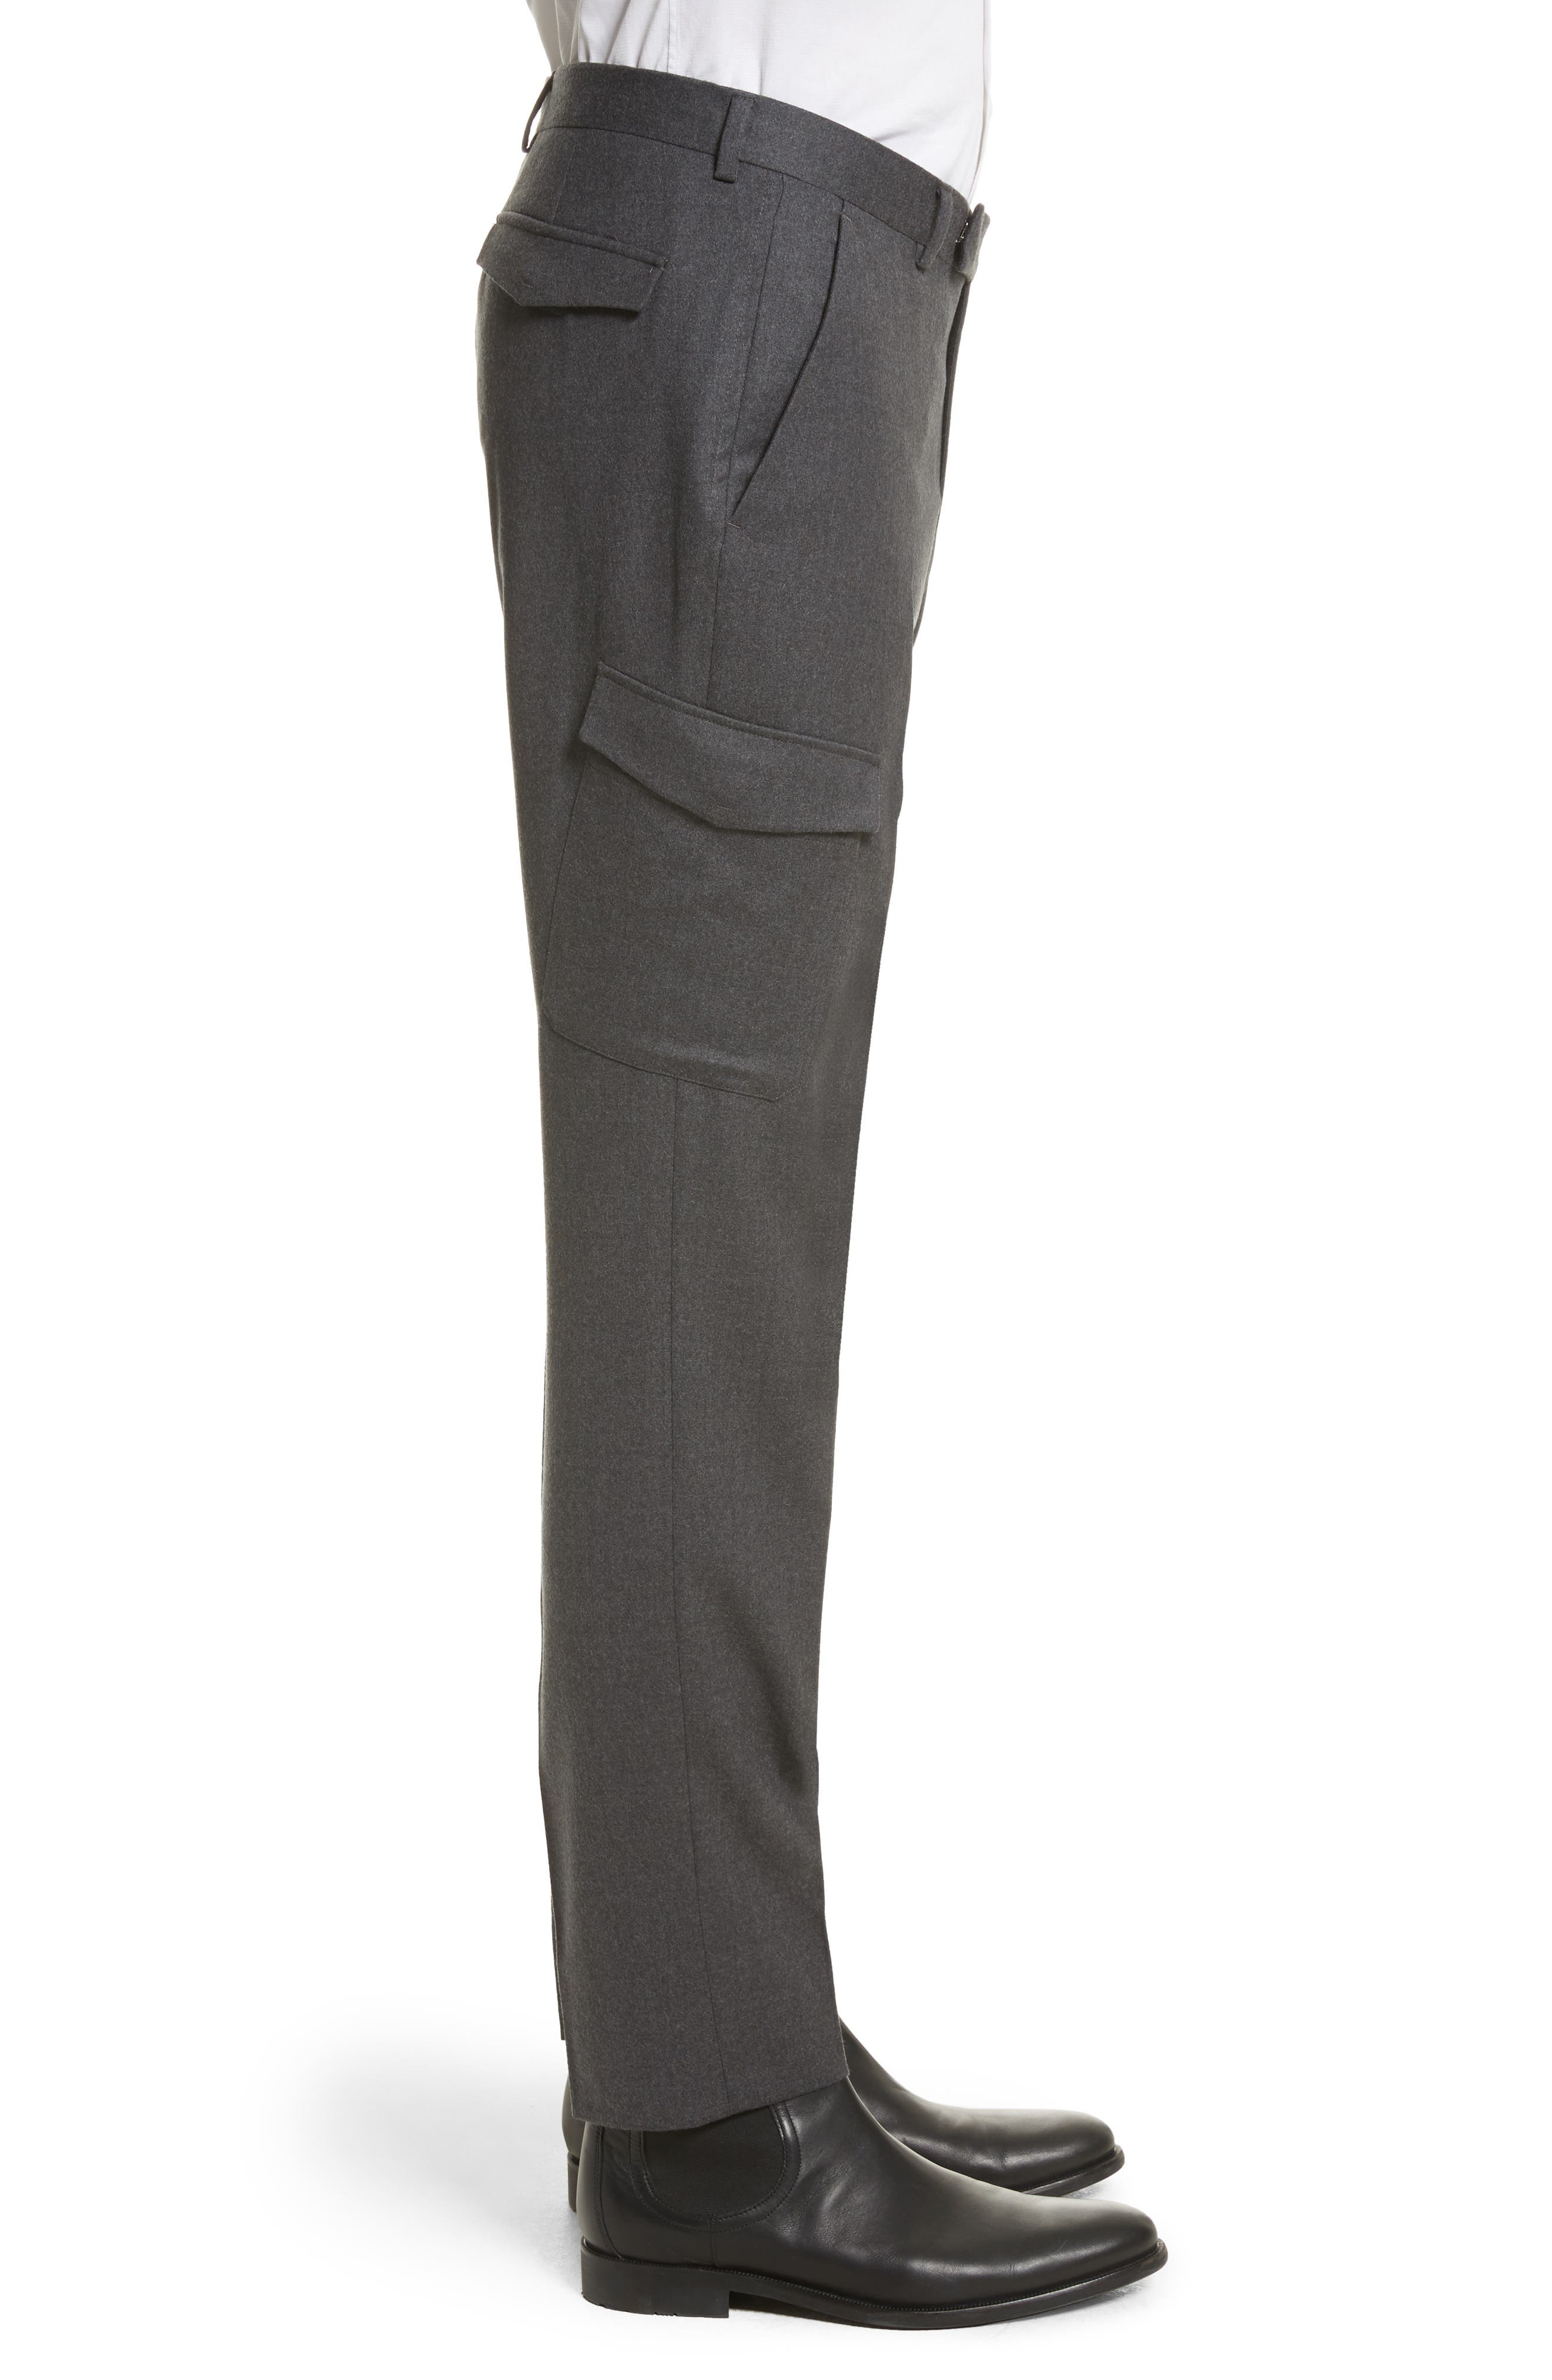 Regular Fit Wool Cargo Trousers,                             Alternate thumbnail 4, color,                             022